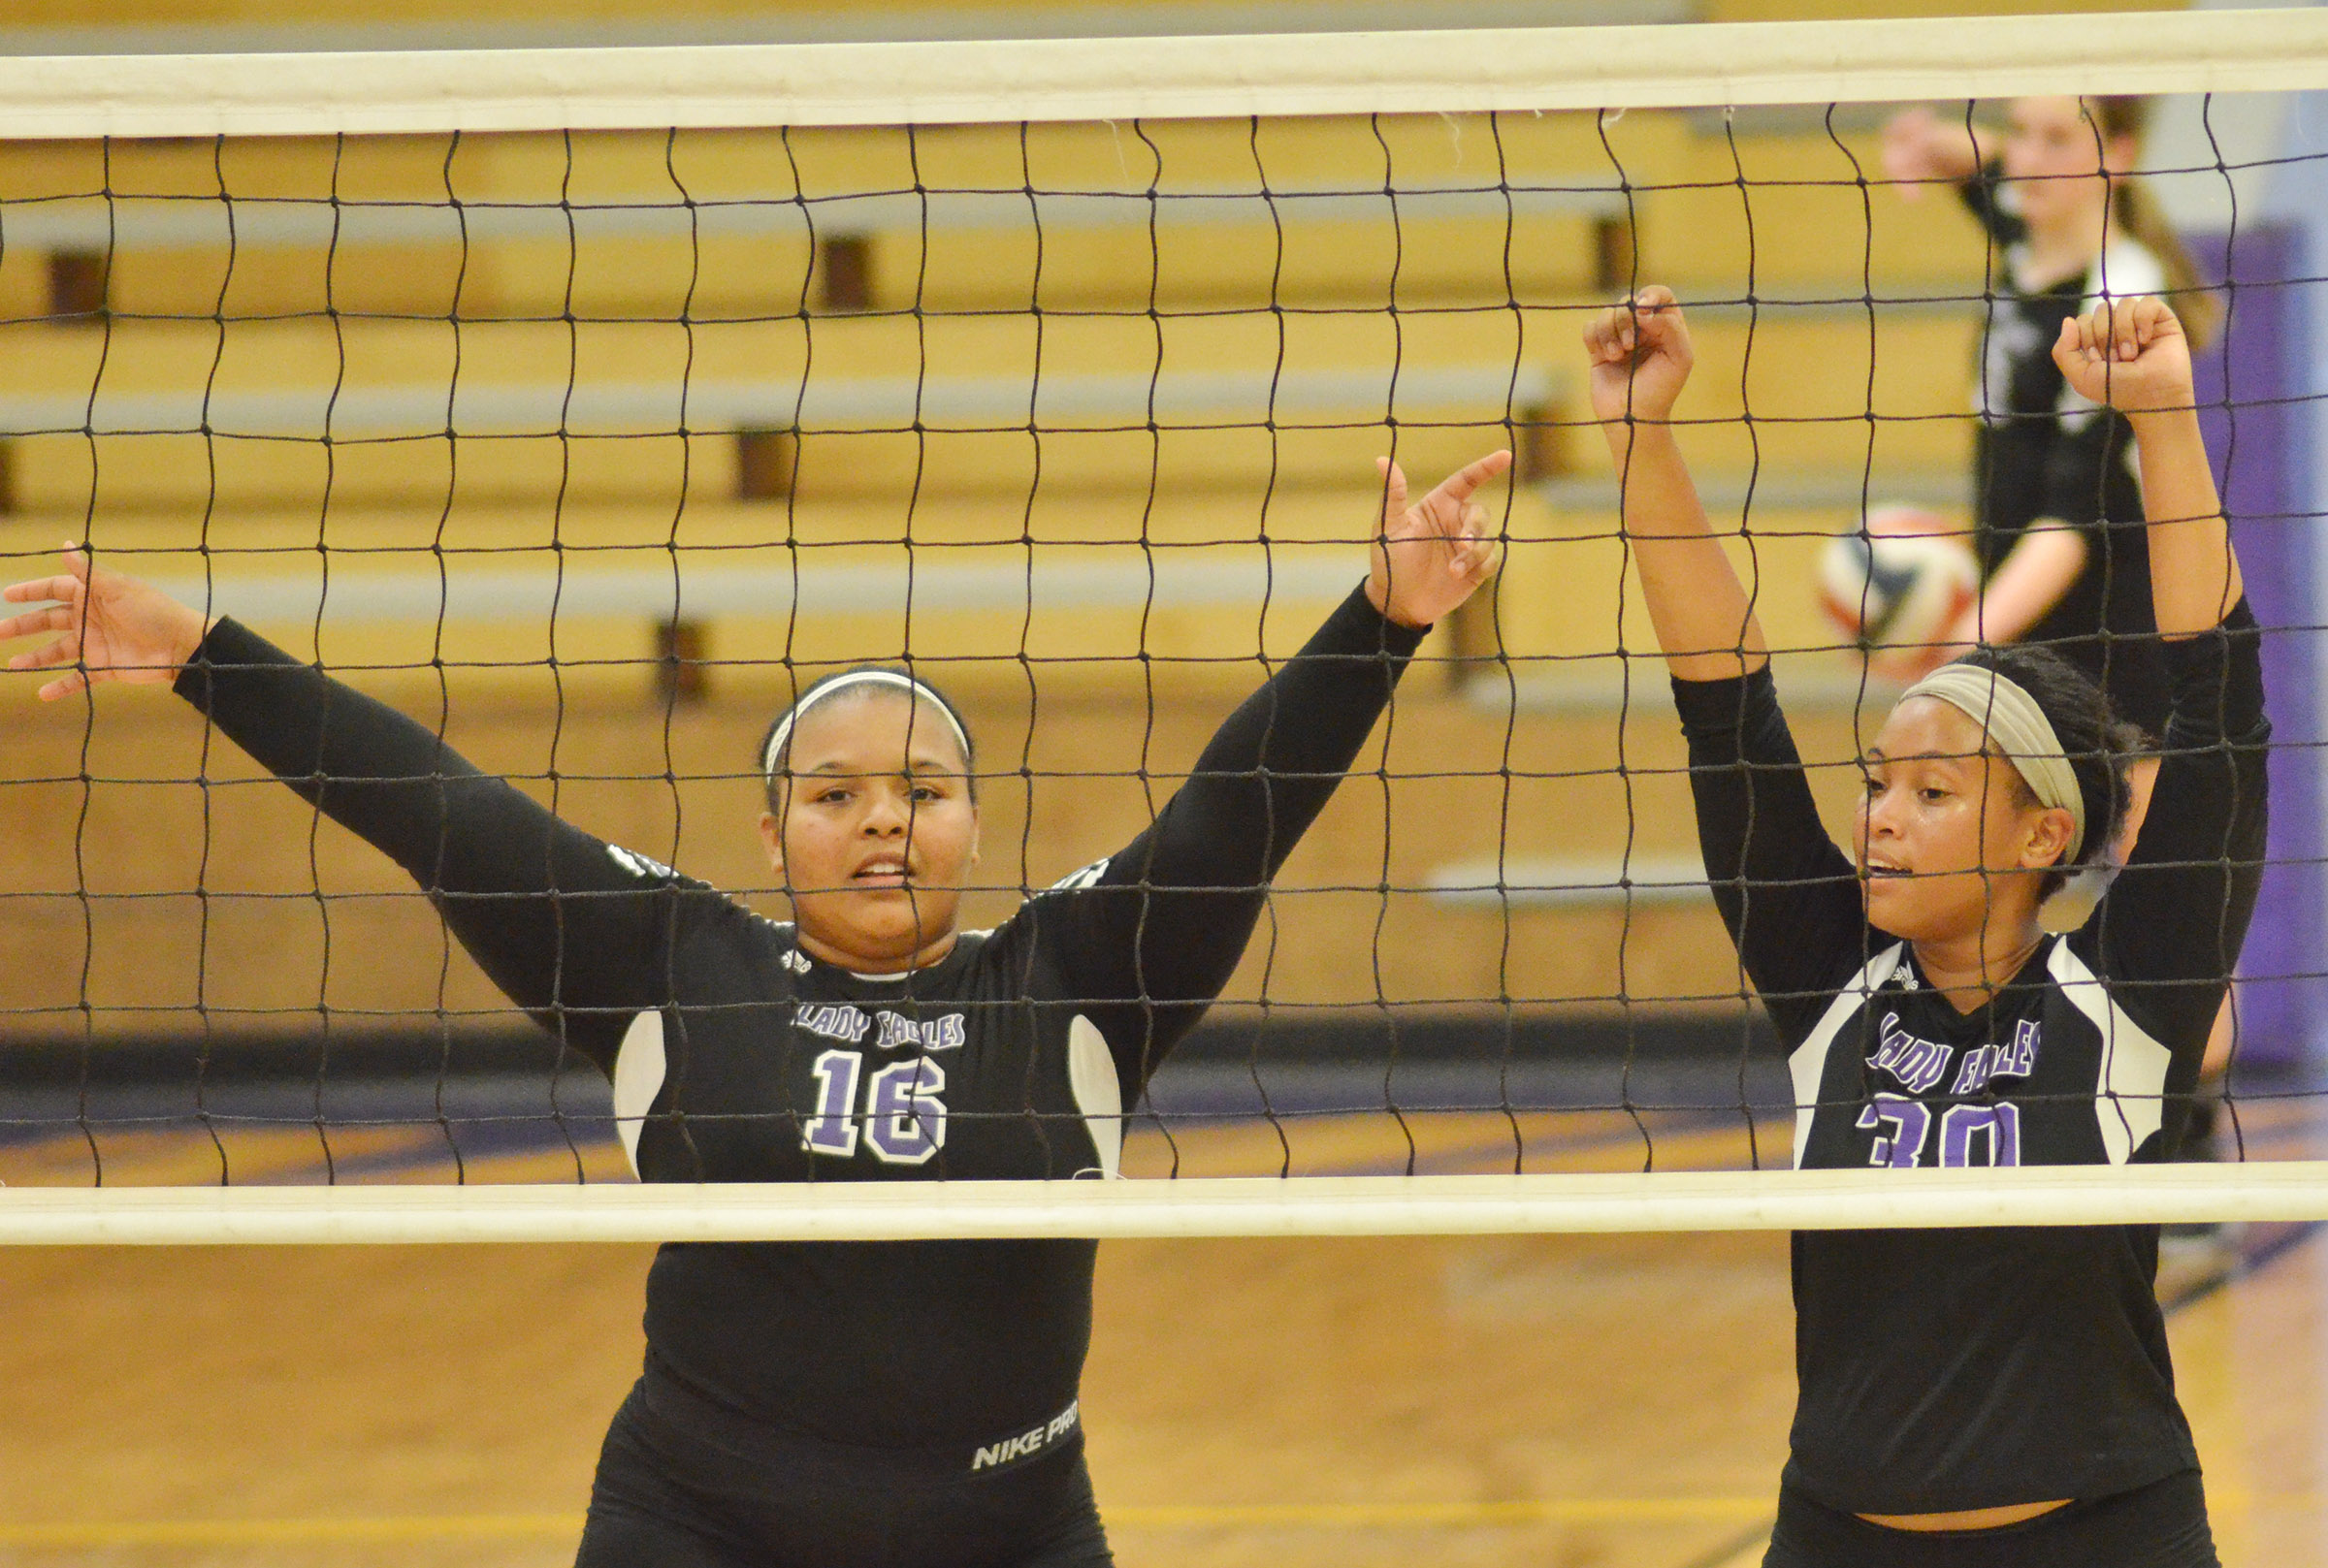 CHS junior Natalie Caldwell, at left, and sophomore Ketayah Taylor guard the net.